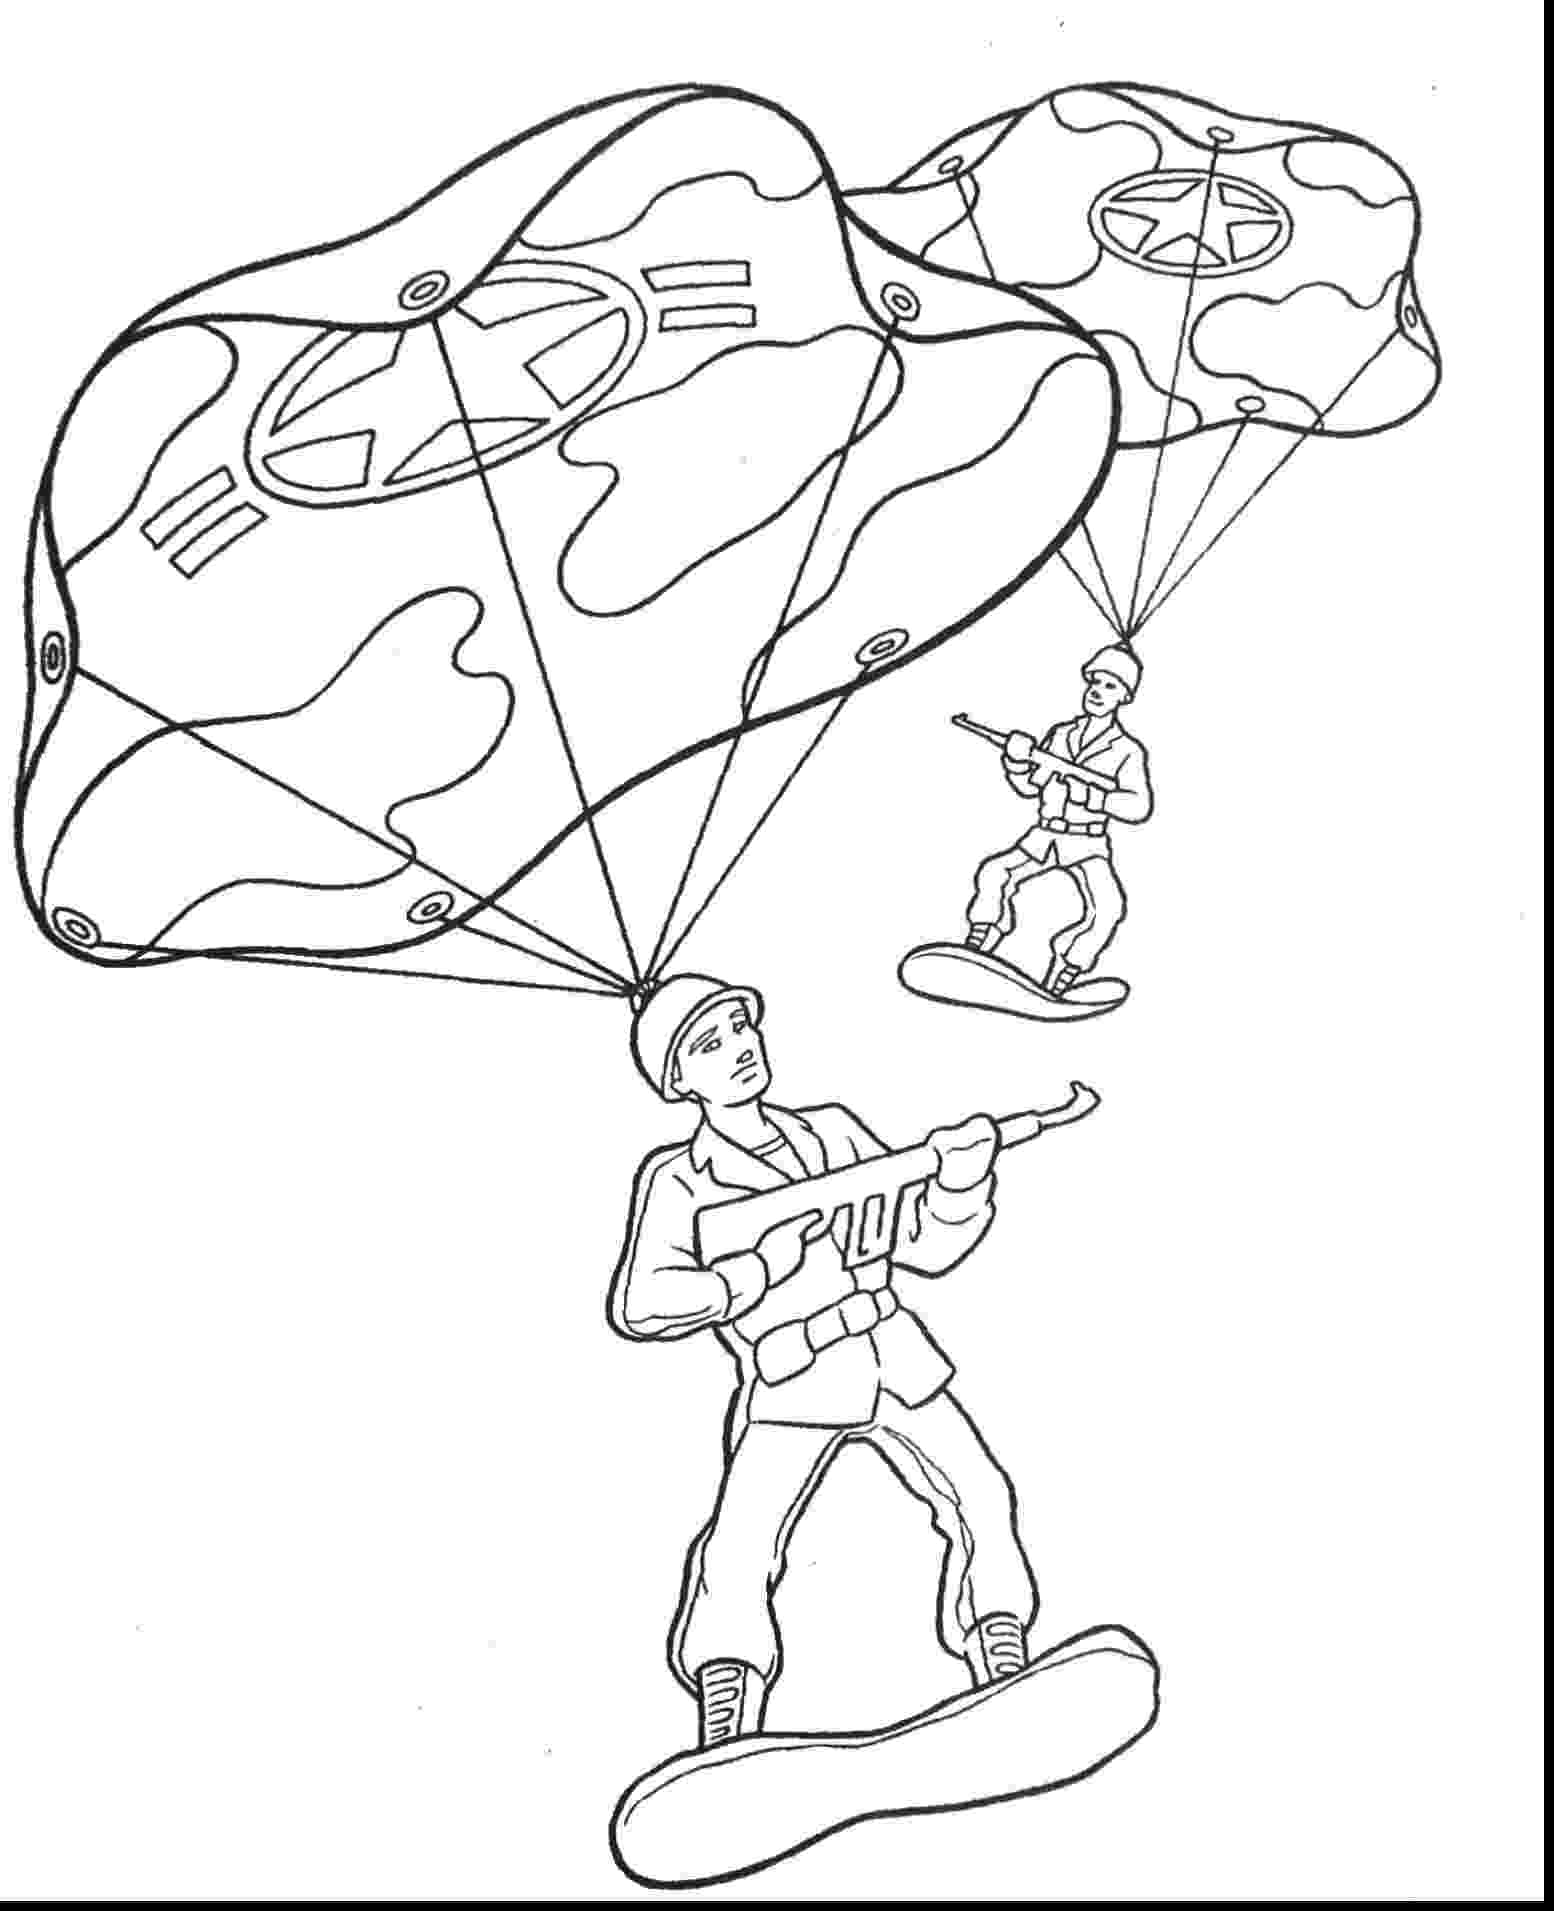 soldier coloring page stand tall july 4th coloring pages july 4th free coloring soldier page